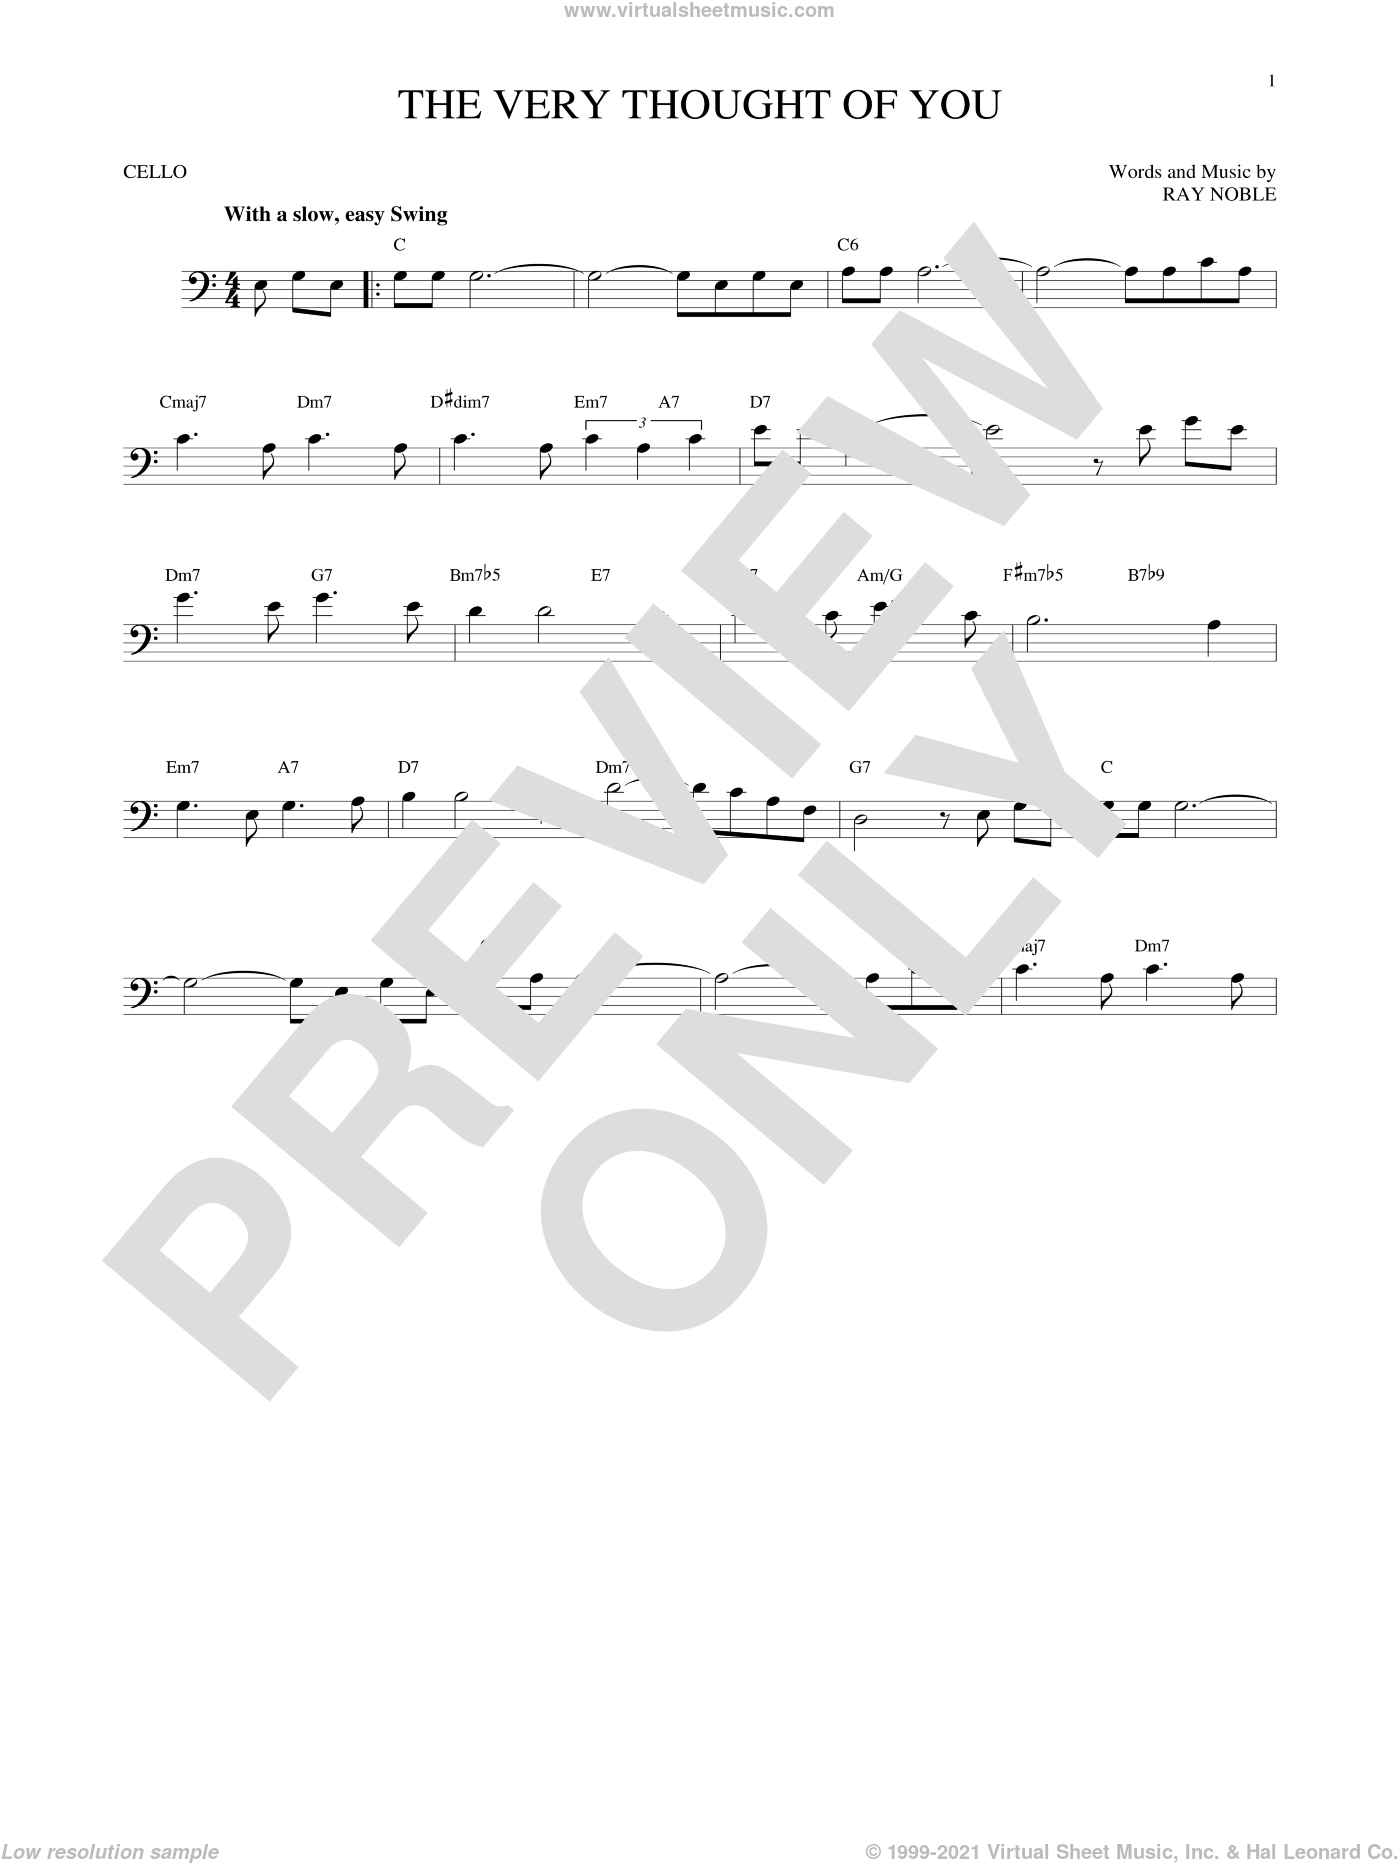 The Very Thought Of You sheet music for cello solo by Ray Noble, intermediate skill level